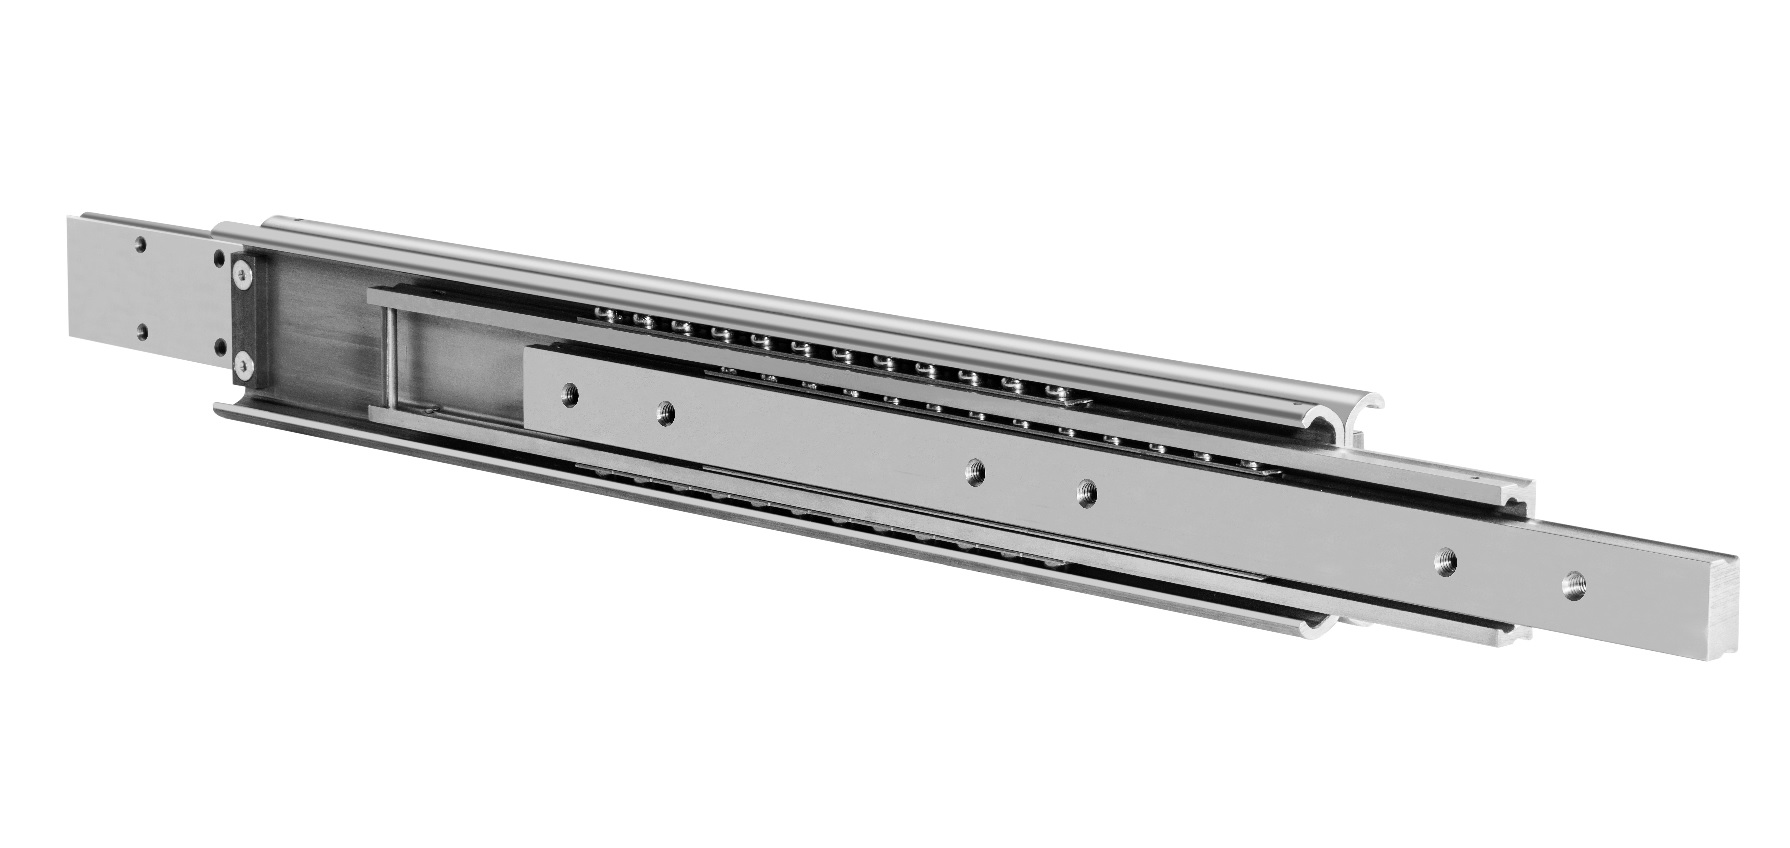 Hegra 150% Extension Rails Image